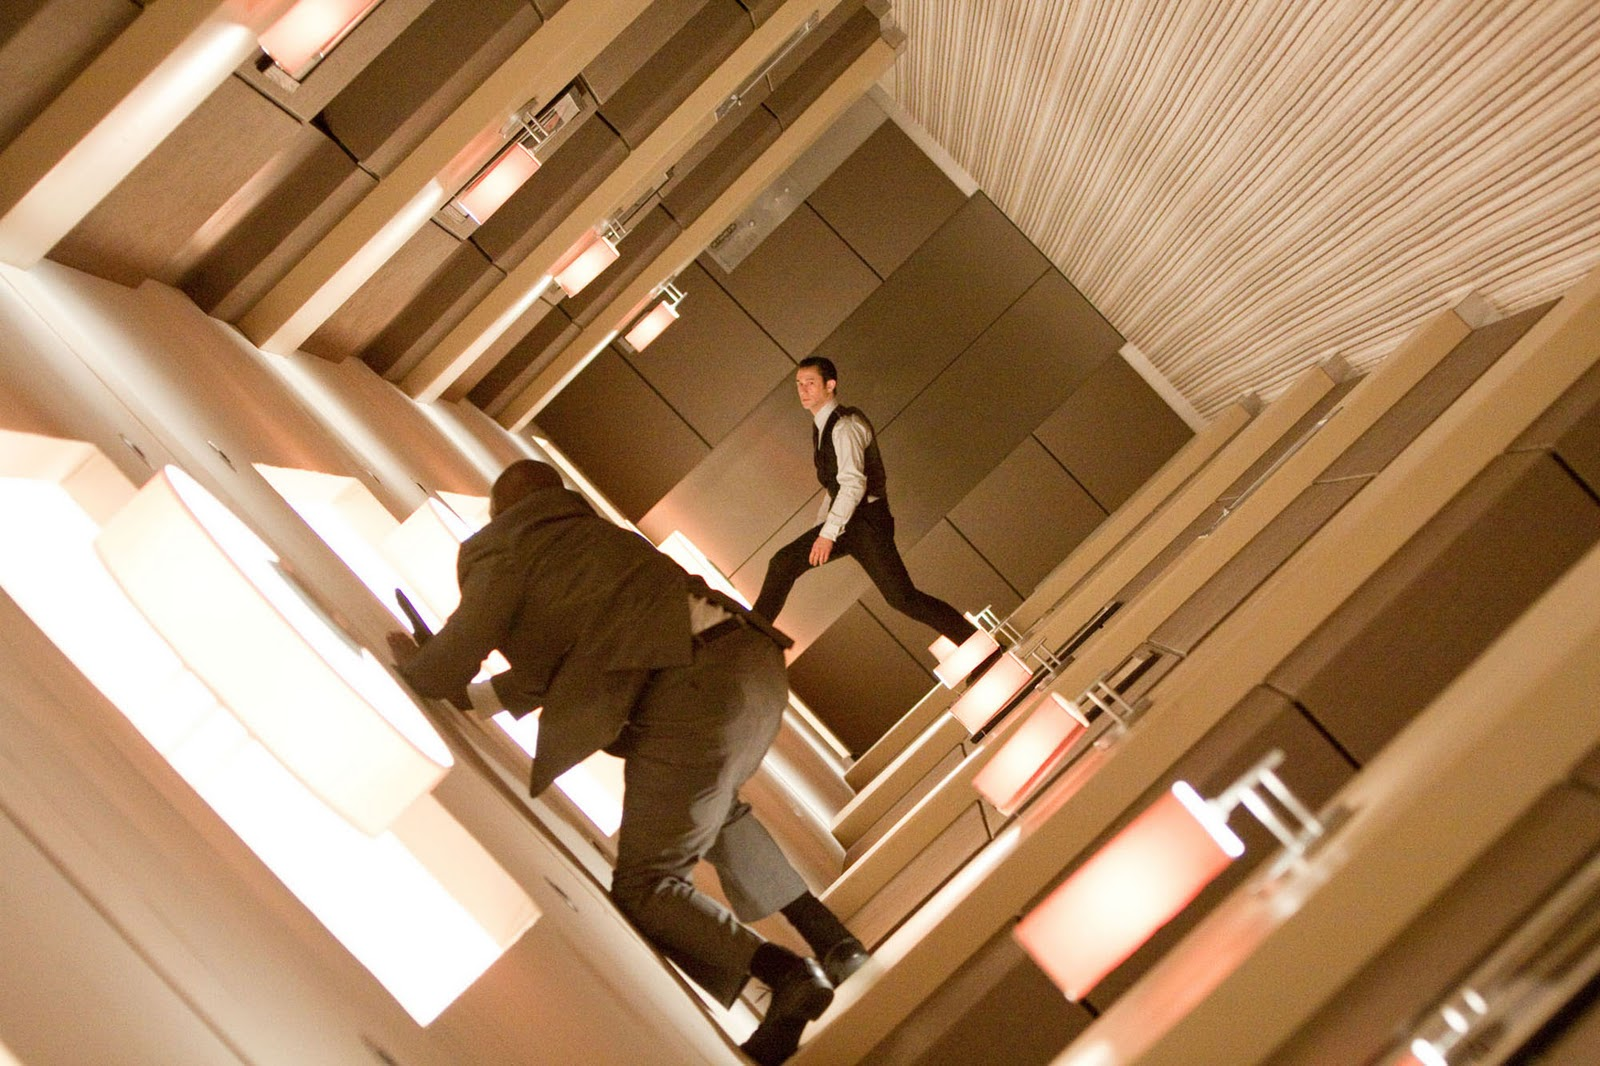 http://2.bp.blogspot.com/_UowVPiAaBf8/TVCcYFo8LOI/AAAAAAAAAiw/PcjXSY50Azo/s1600/inception_movie_image_hi-res_joseph_gordon-levitt_01.jpg